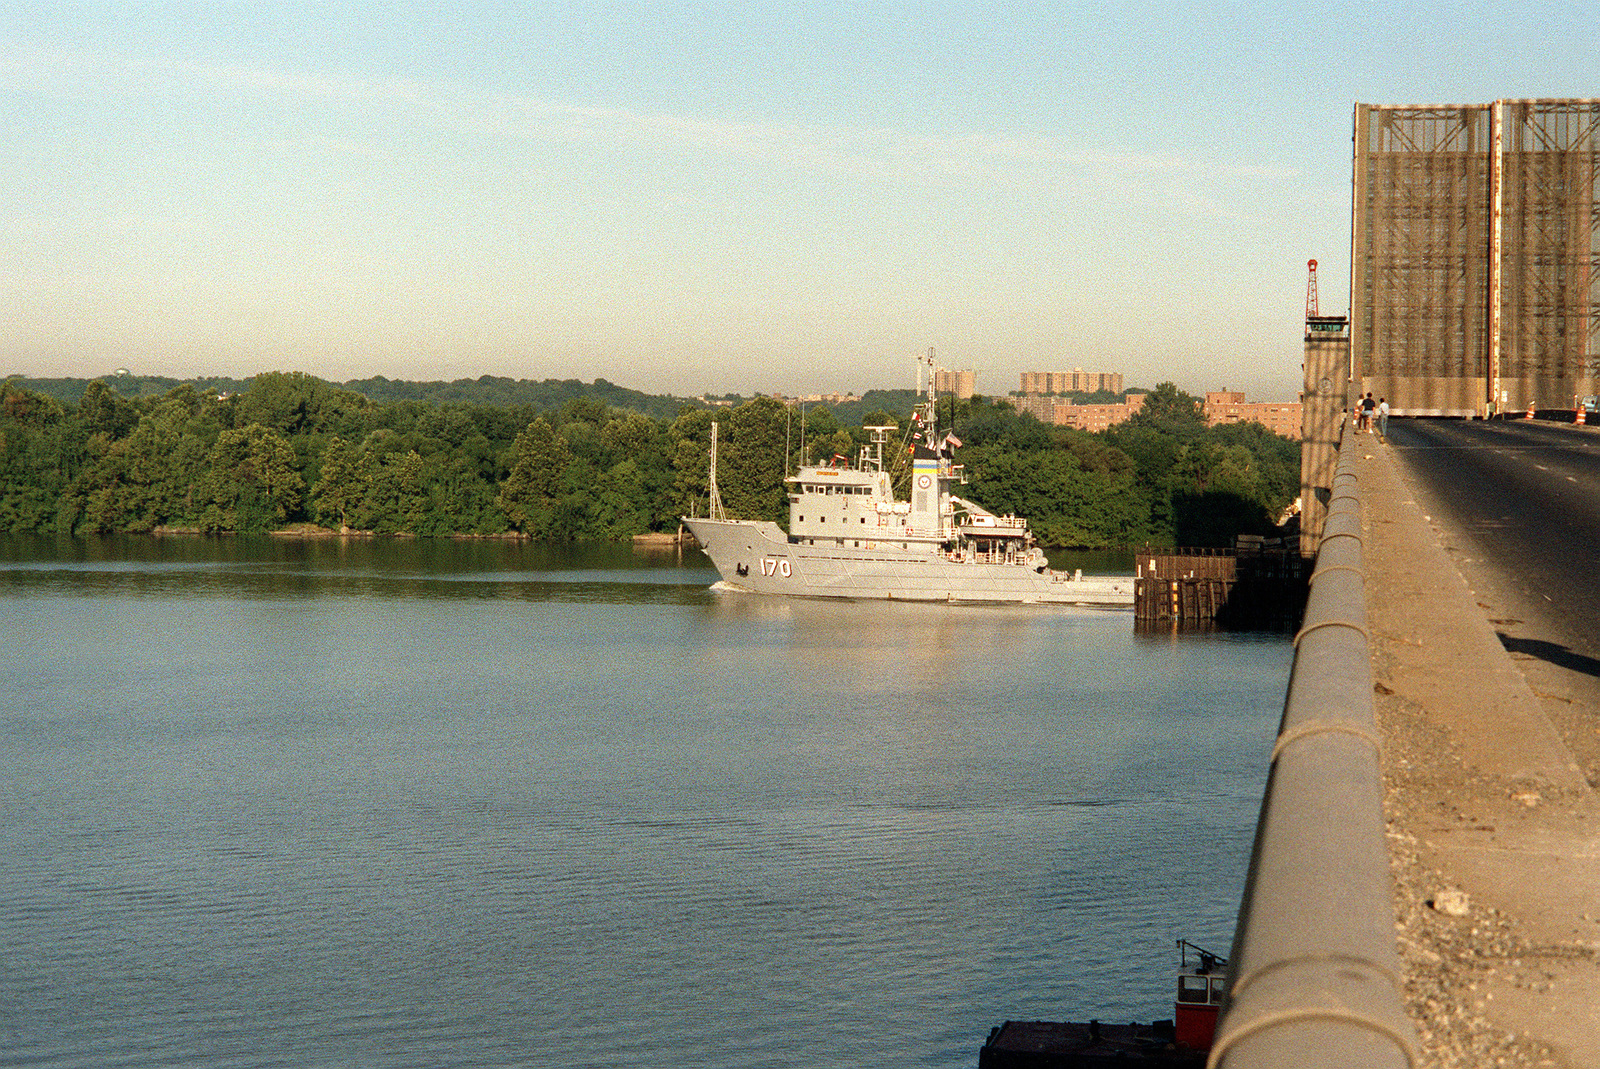 A port beam view of the fleet tug USNS MOHAWK (T-ATF-170) as it passes through the draw of the Woodrow Wilson Bridge, after a week-long port visit to the Washington Navy Yard